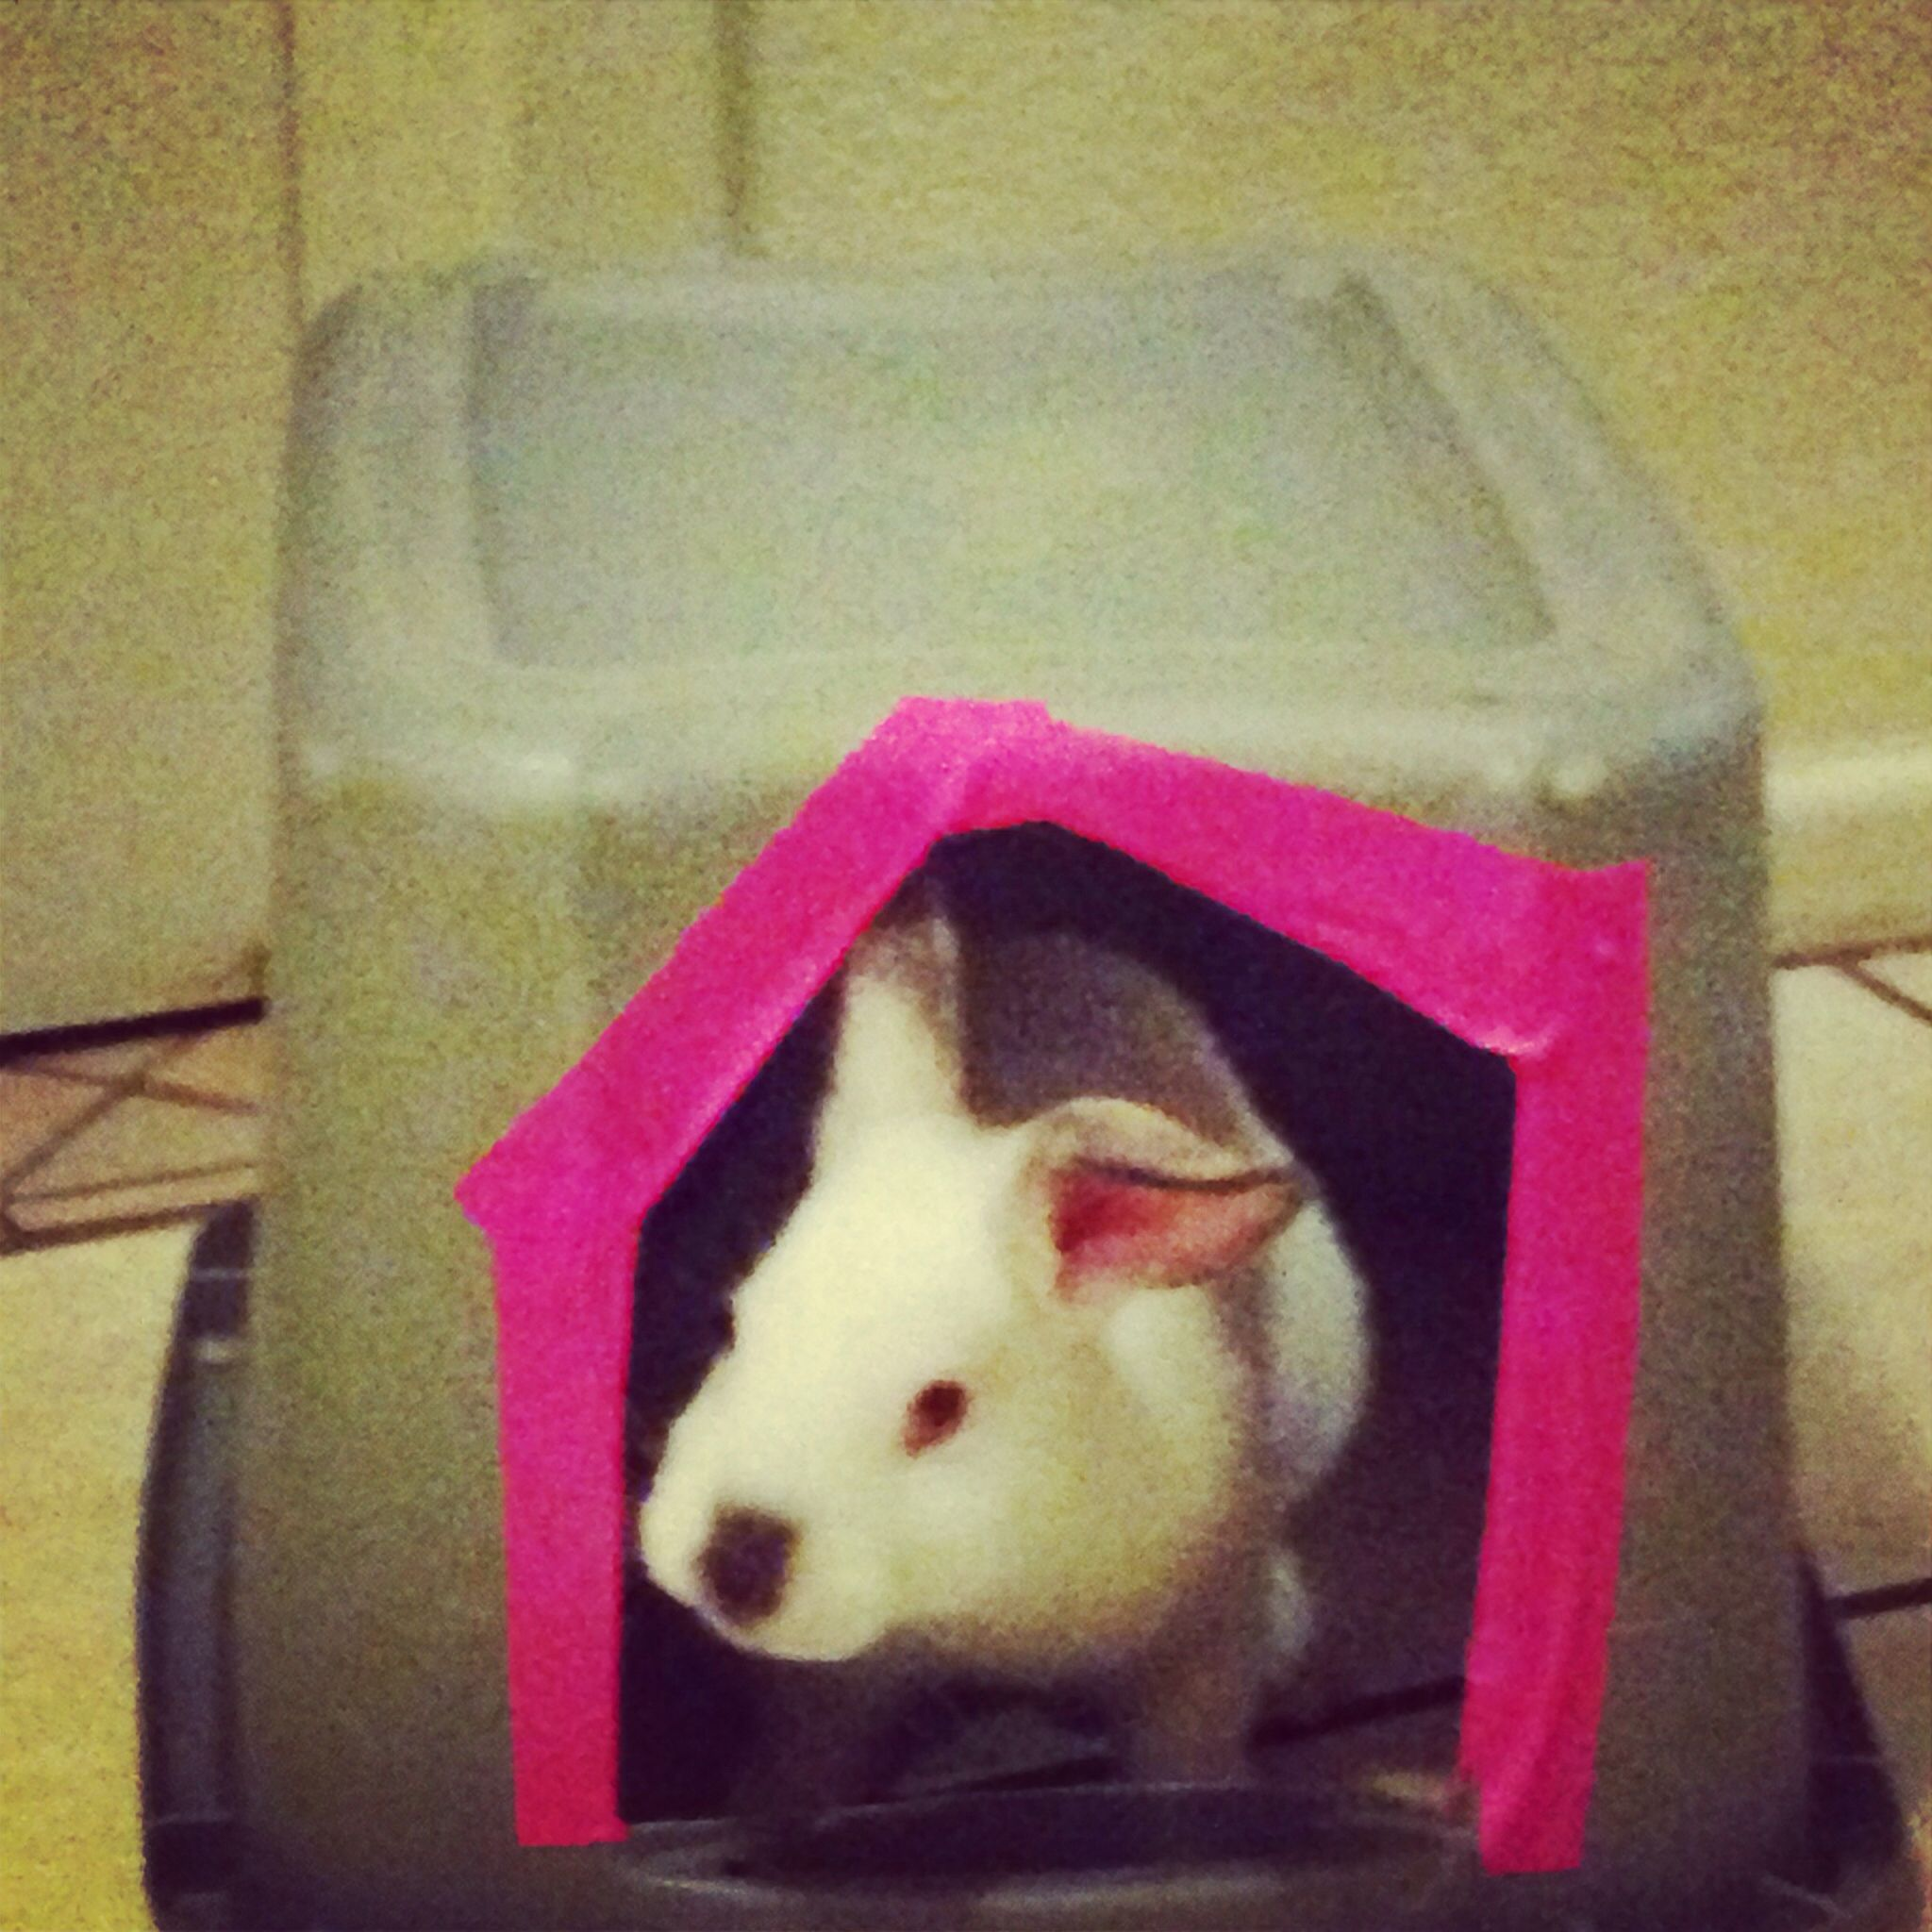 Hidey house for large bunny made from a Rubbermaid tub. It